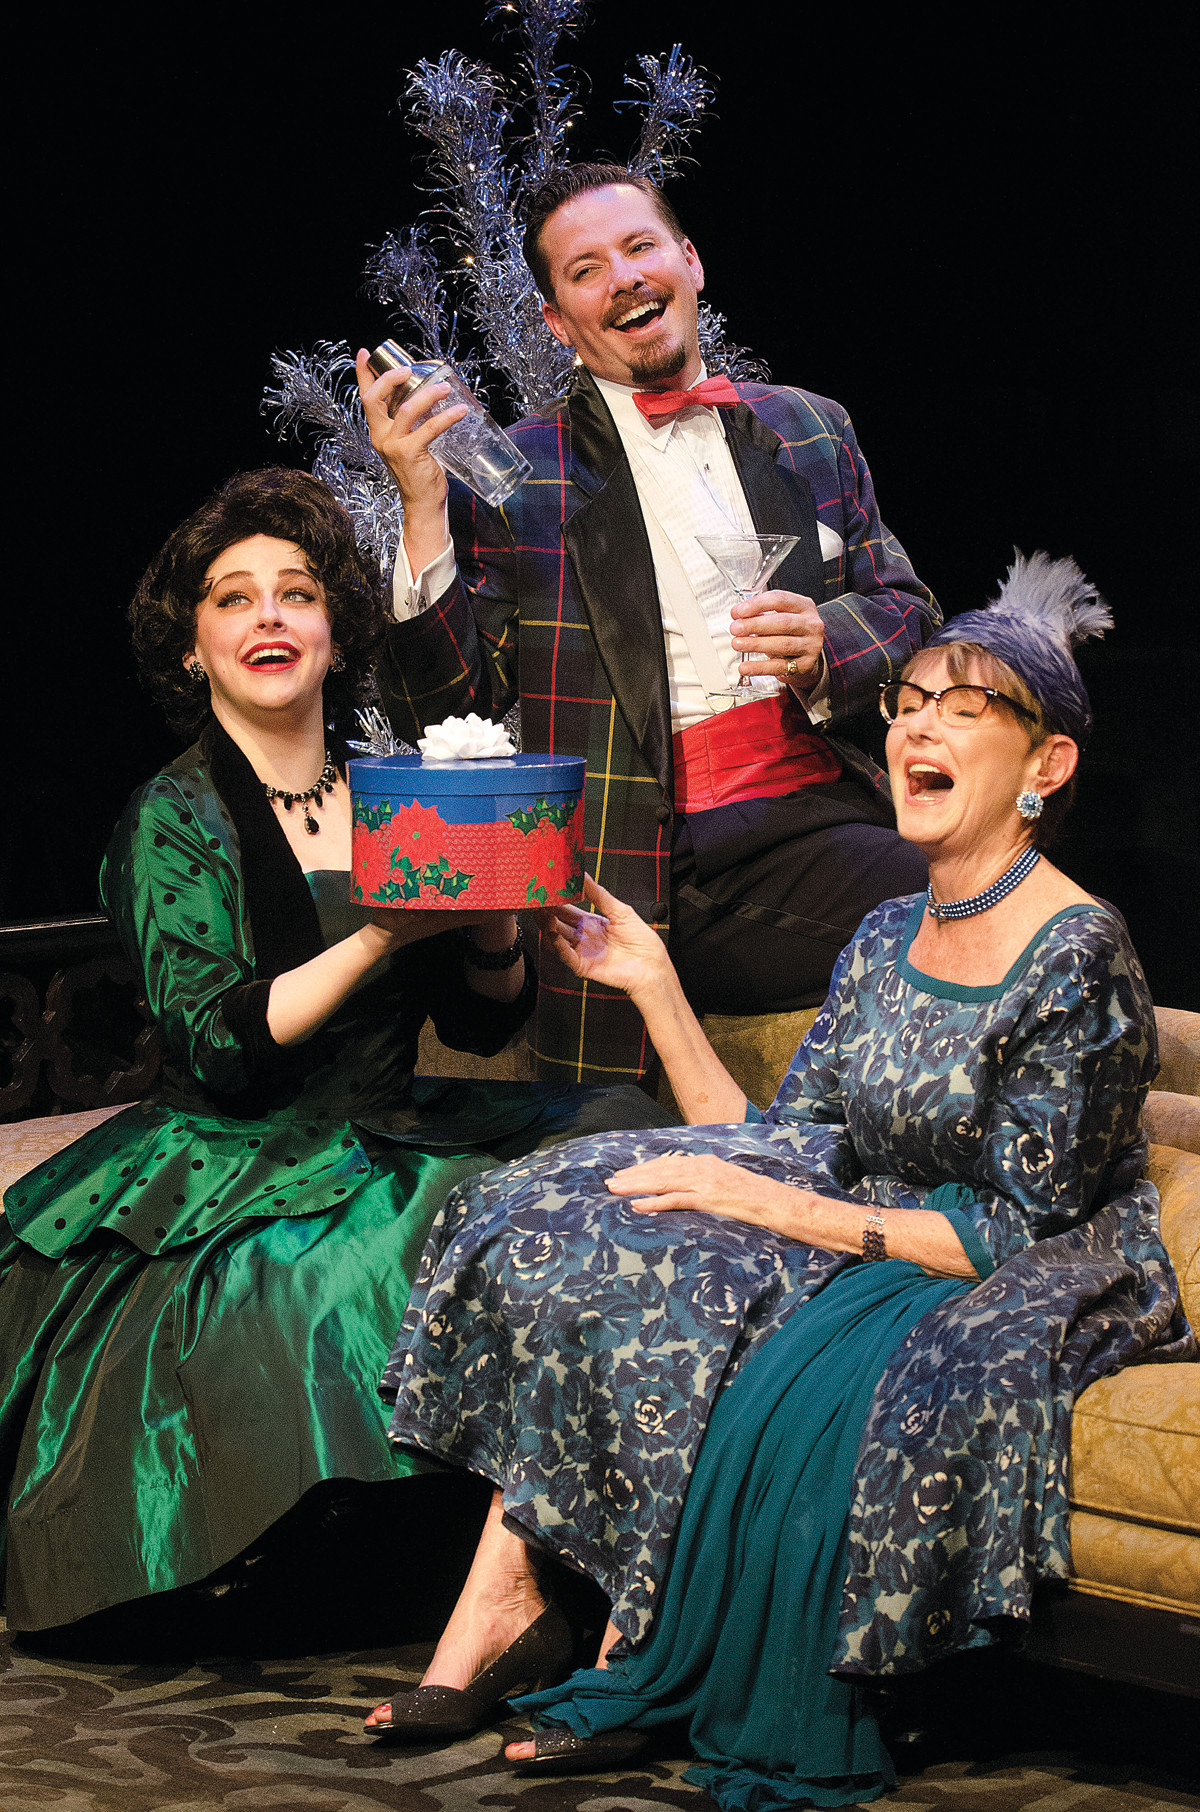 Valerie Westgate as Gillian, Charles Lafond as Nicky, & Isabel O'Donnell as Auntie Queenie.